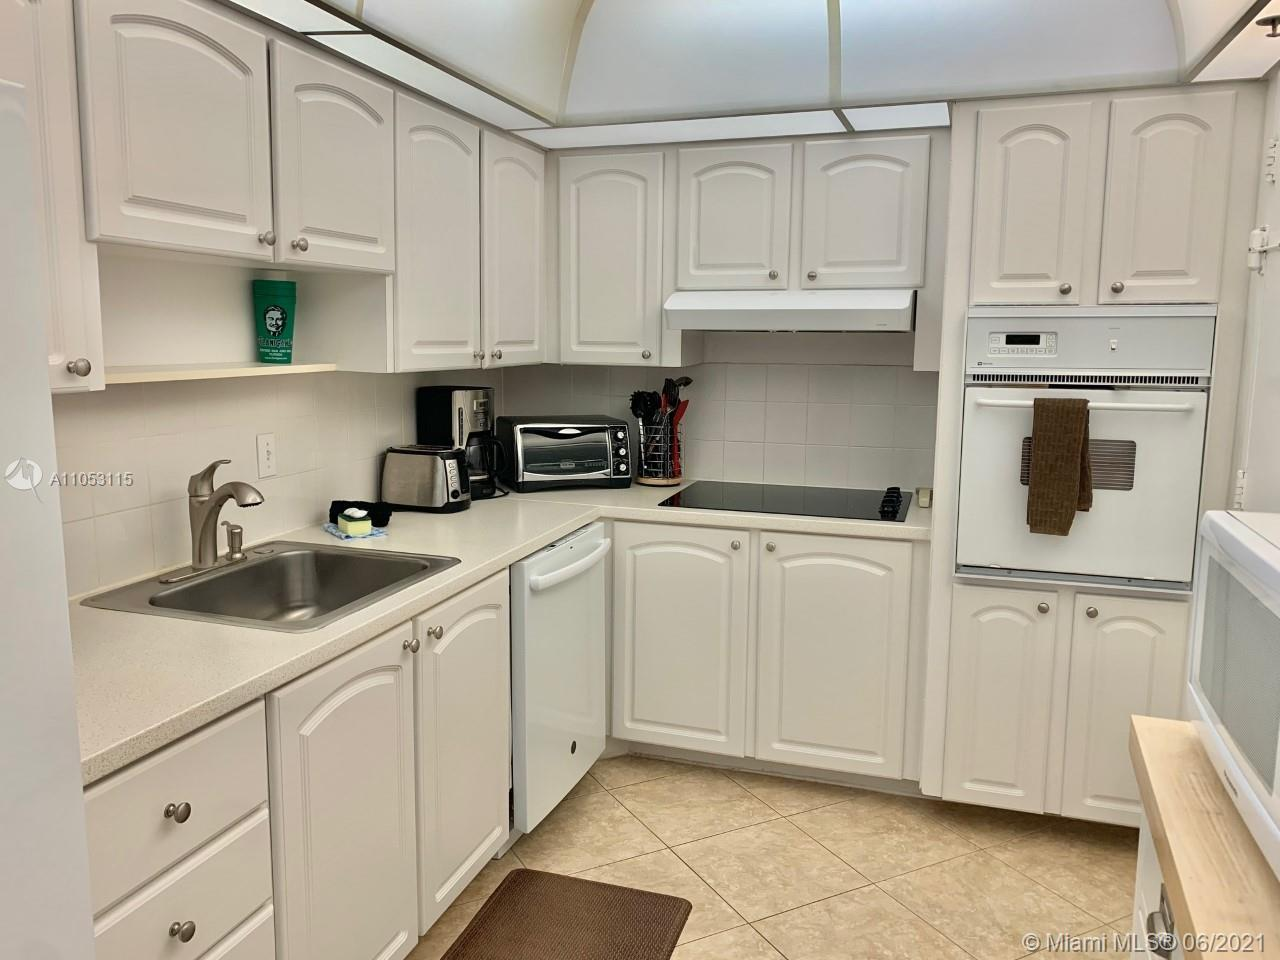 PRISTINE CONDITION 1/1 DIRECTLY ON THE BEACH! UPGRADED BATHROOM, TILED FLOORS THROUGHOUT, FURNISHED